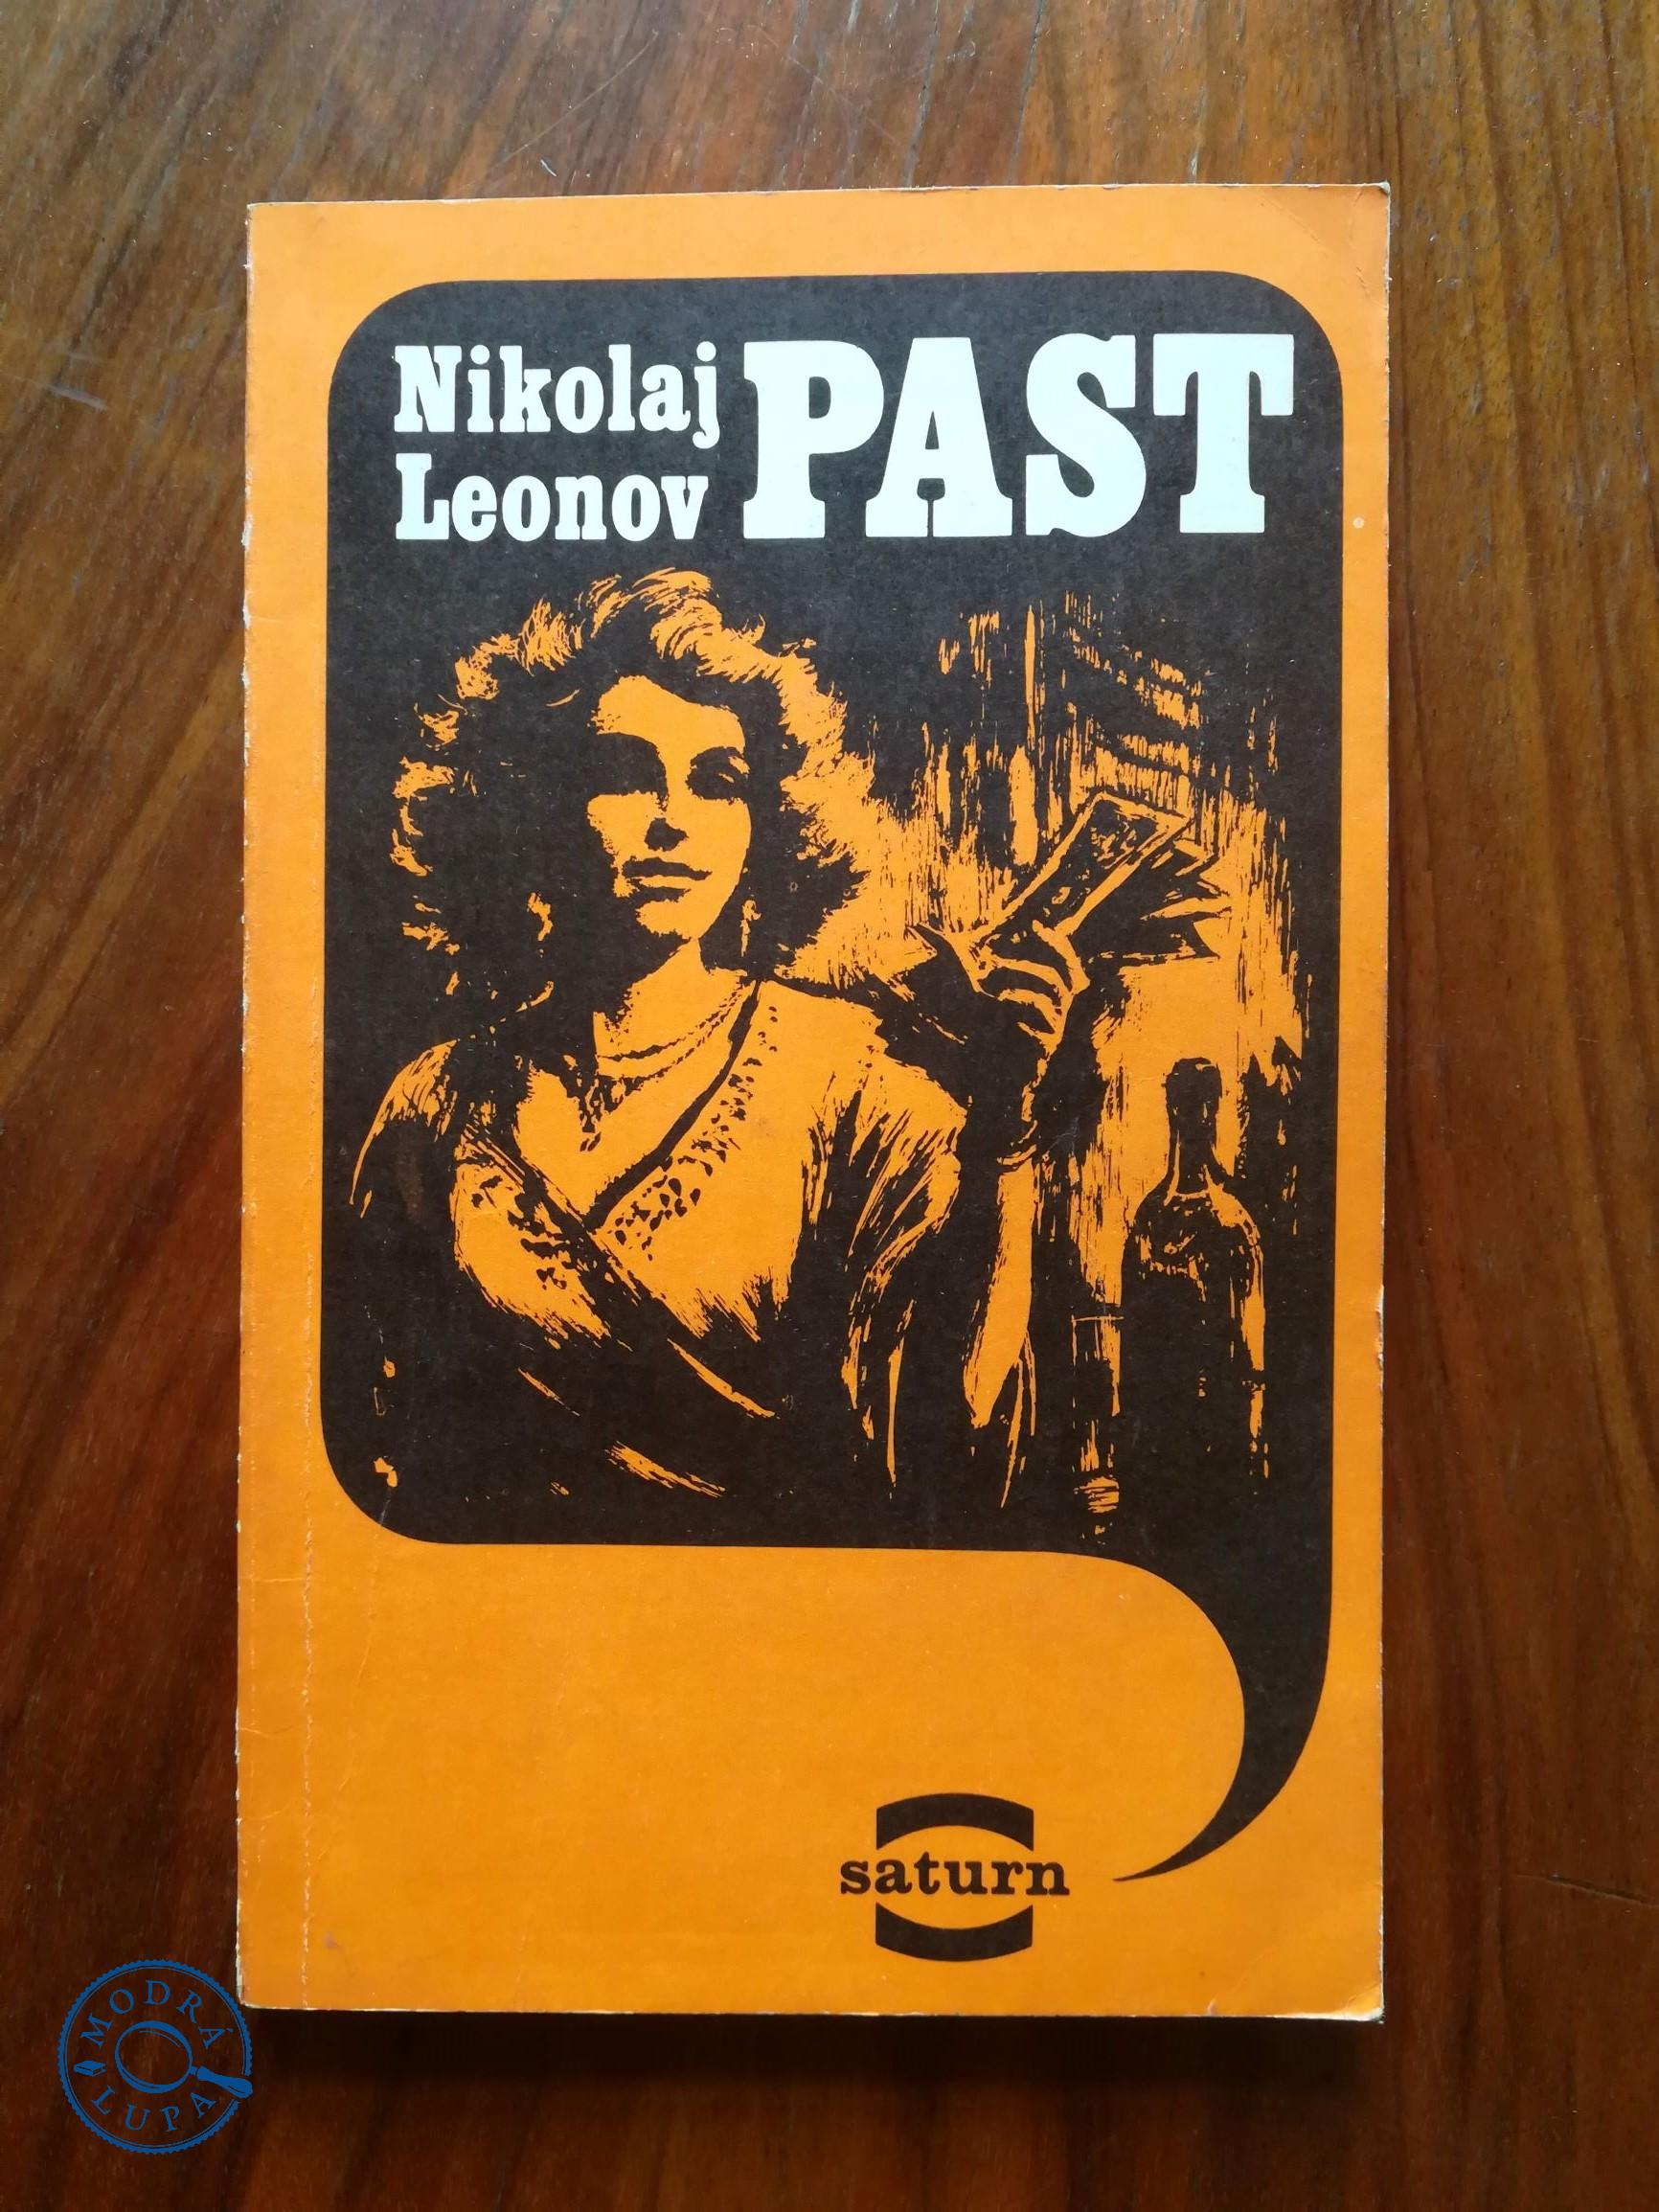 NIKOLAJ LEONOV – Past